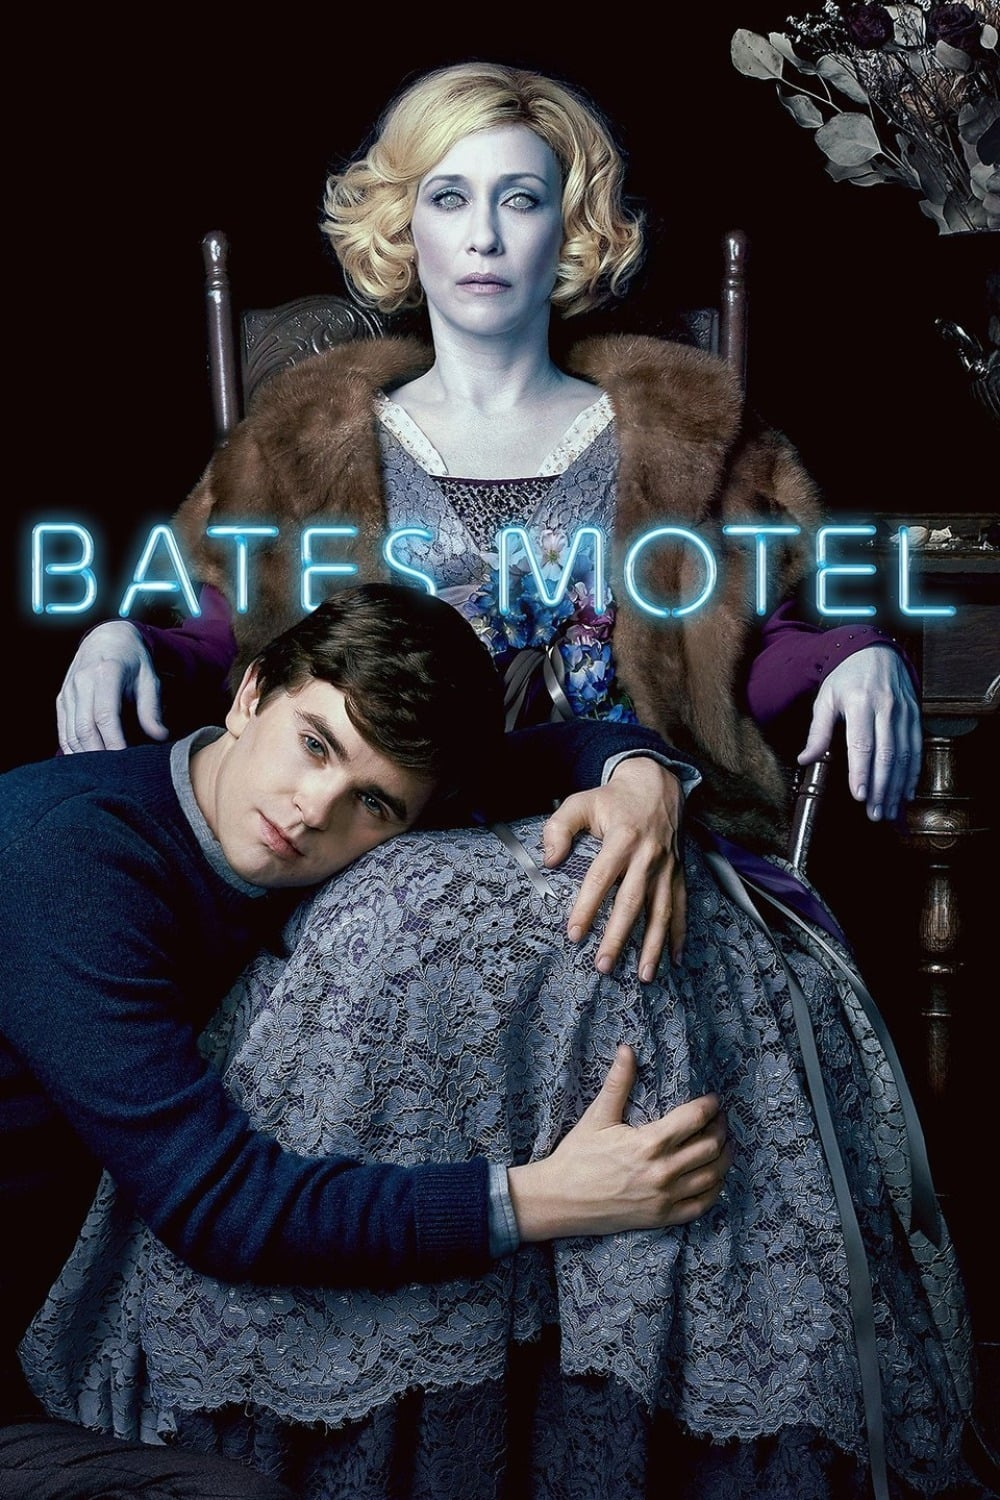 serie bates motel 2013 en streaming vf complet filmstreaming hd com. Black Bedroom Furniture Sets. Home Design Ideas